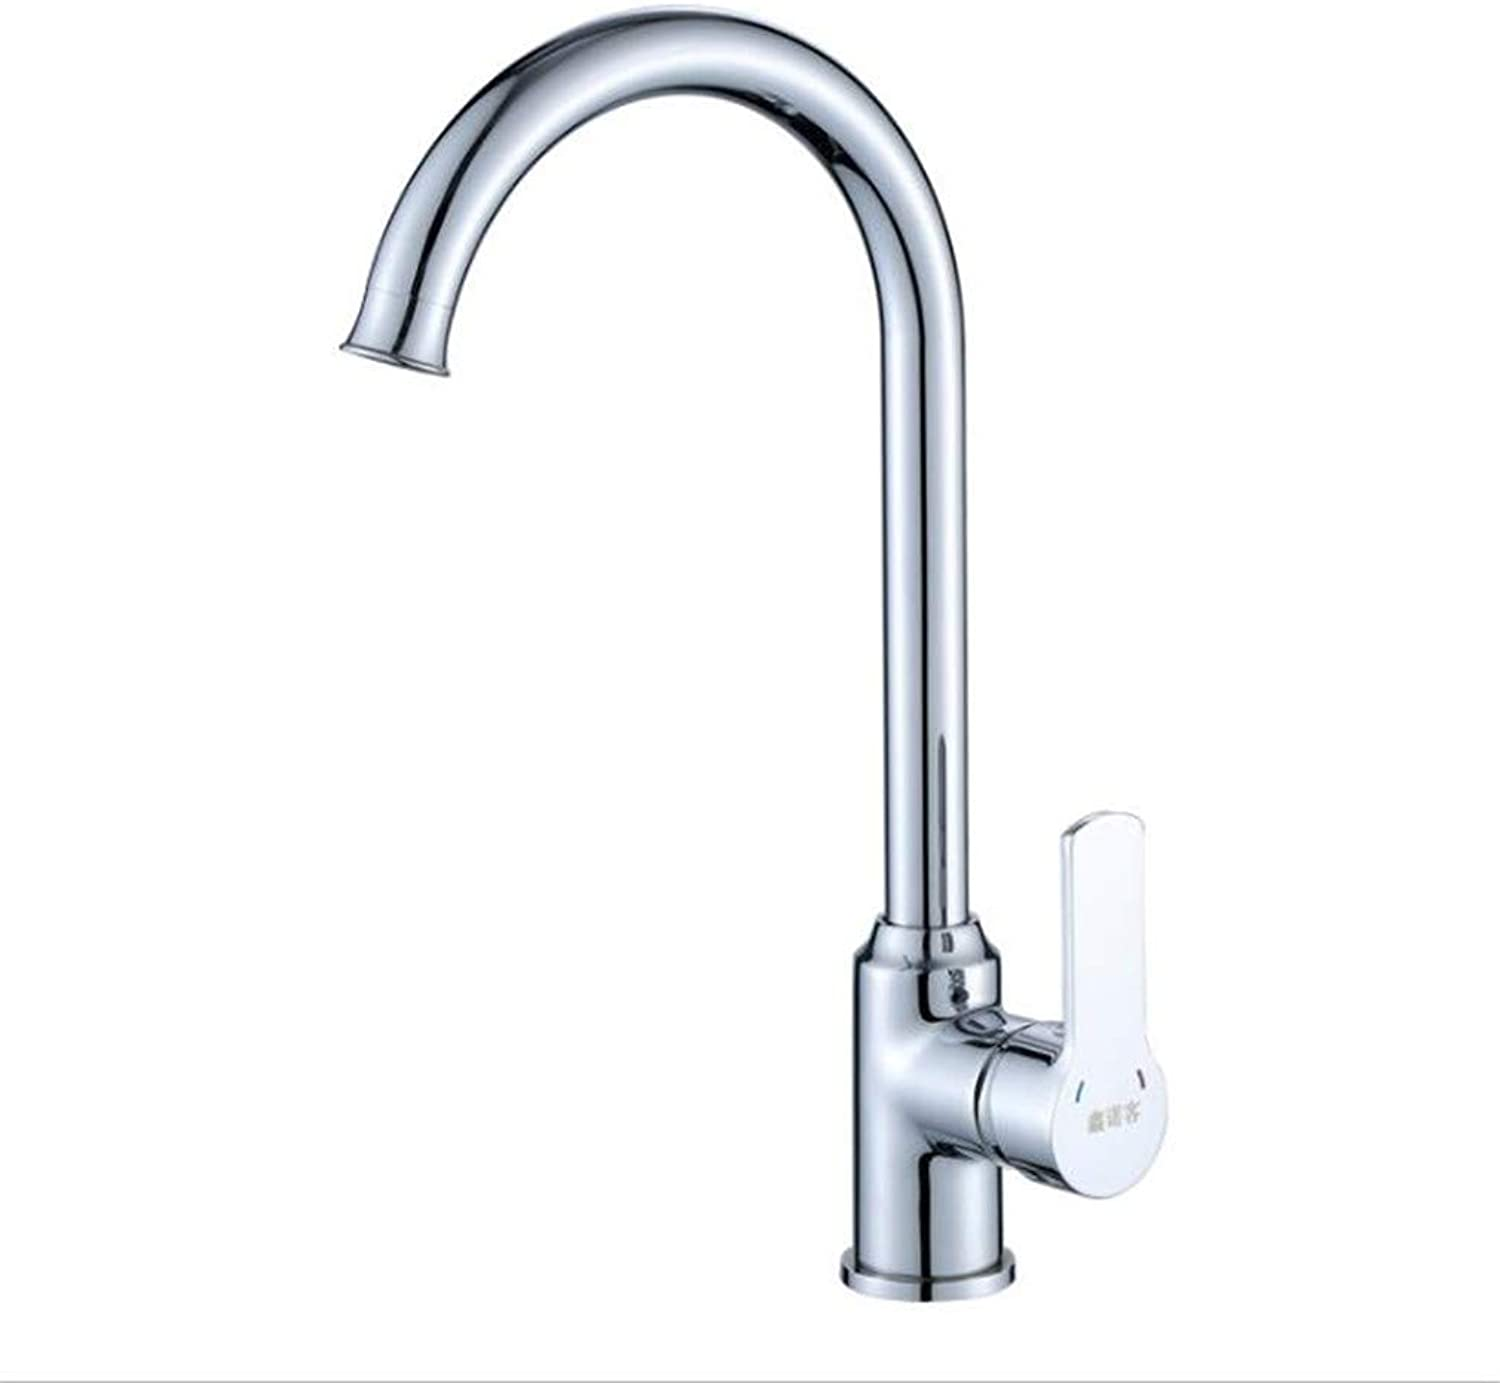 Bathroom Sink Basin Lever Mixer Tap Red Chong Copper Faucet Kitchen Washing Pot Faucet Cold and Hot Mixed Flume Faucet